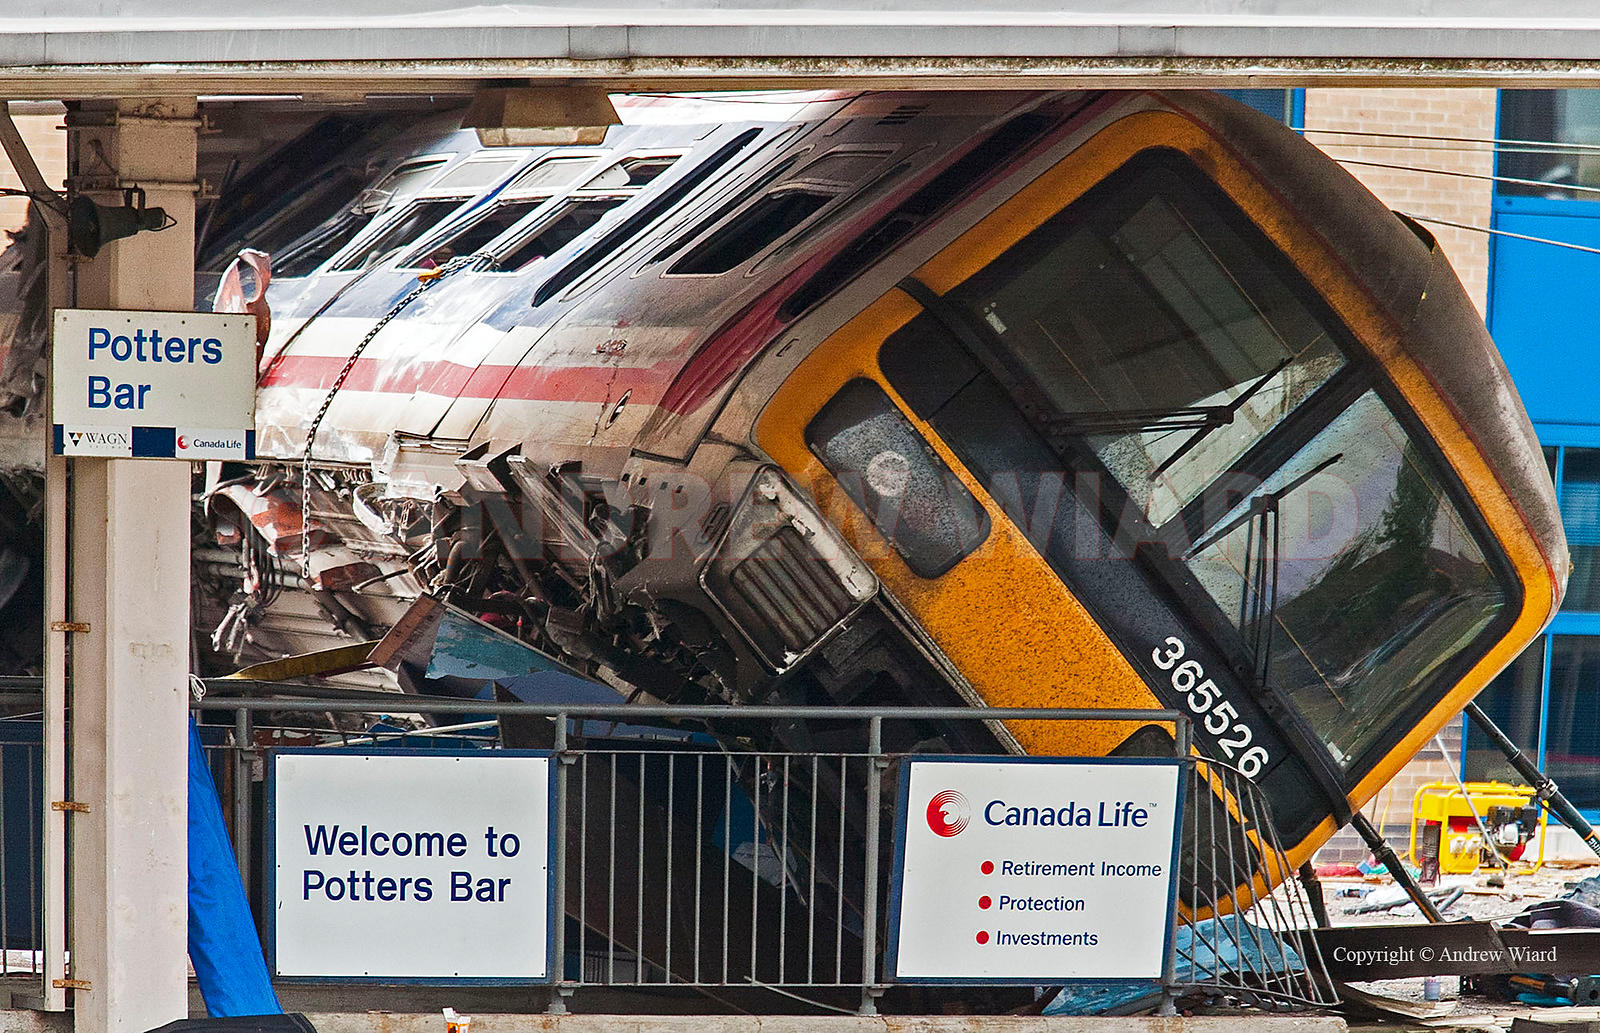 England, UK . 11.5.2002. Potters Bar . Potters Bar train crash - scene the day after the derailment ( 10.5.2002 ) in which se...